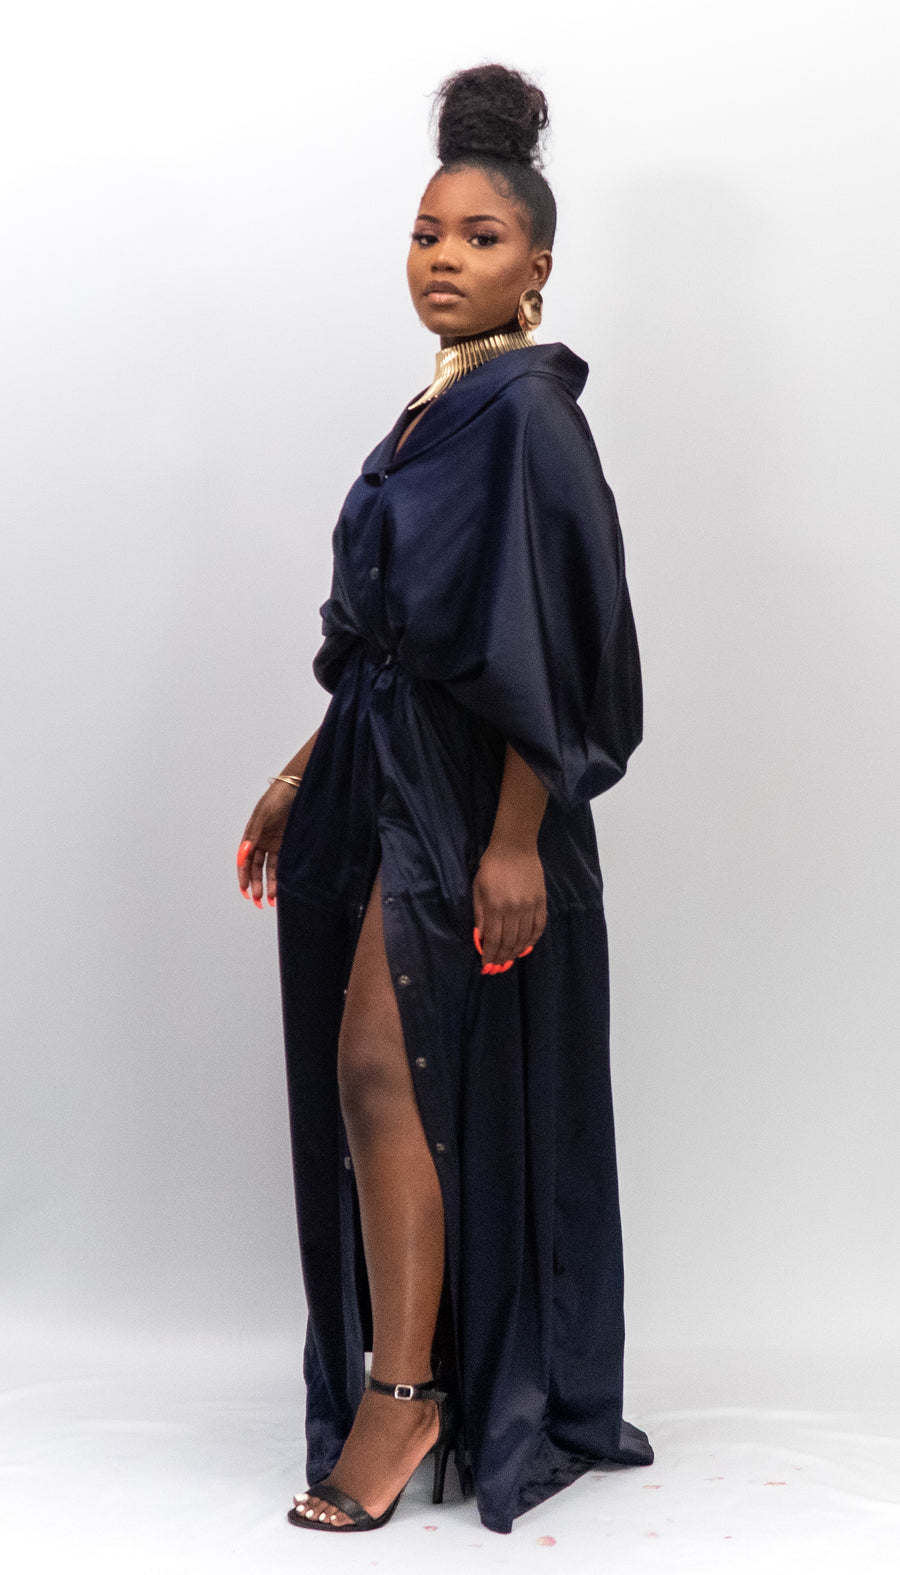 The Nana Cape Dress